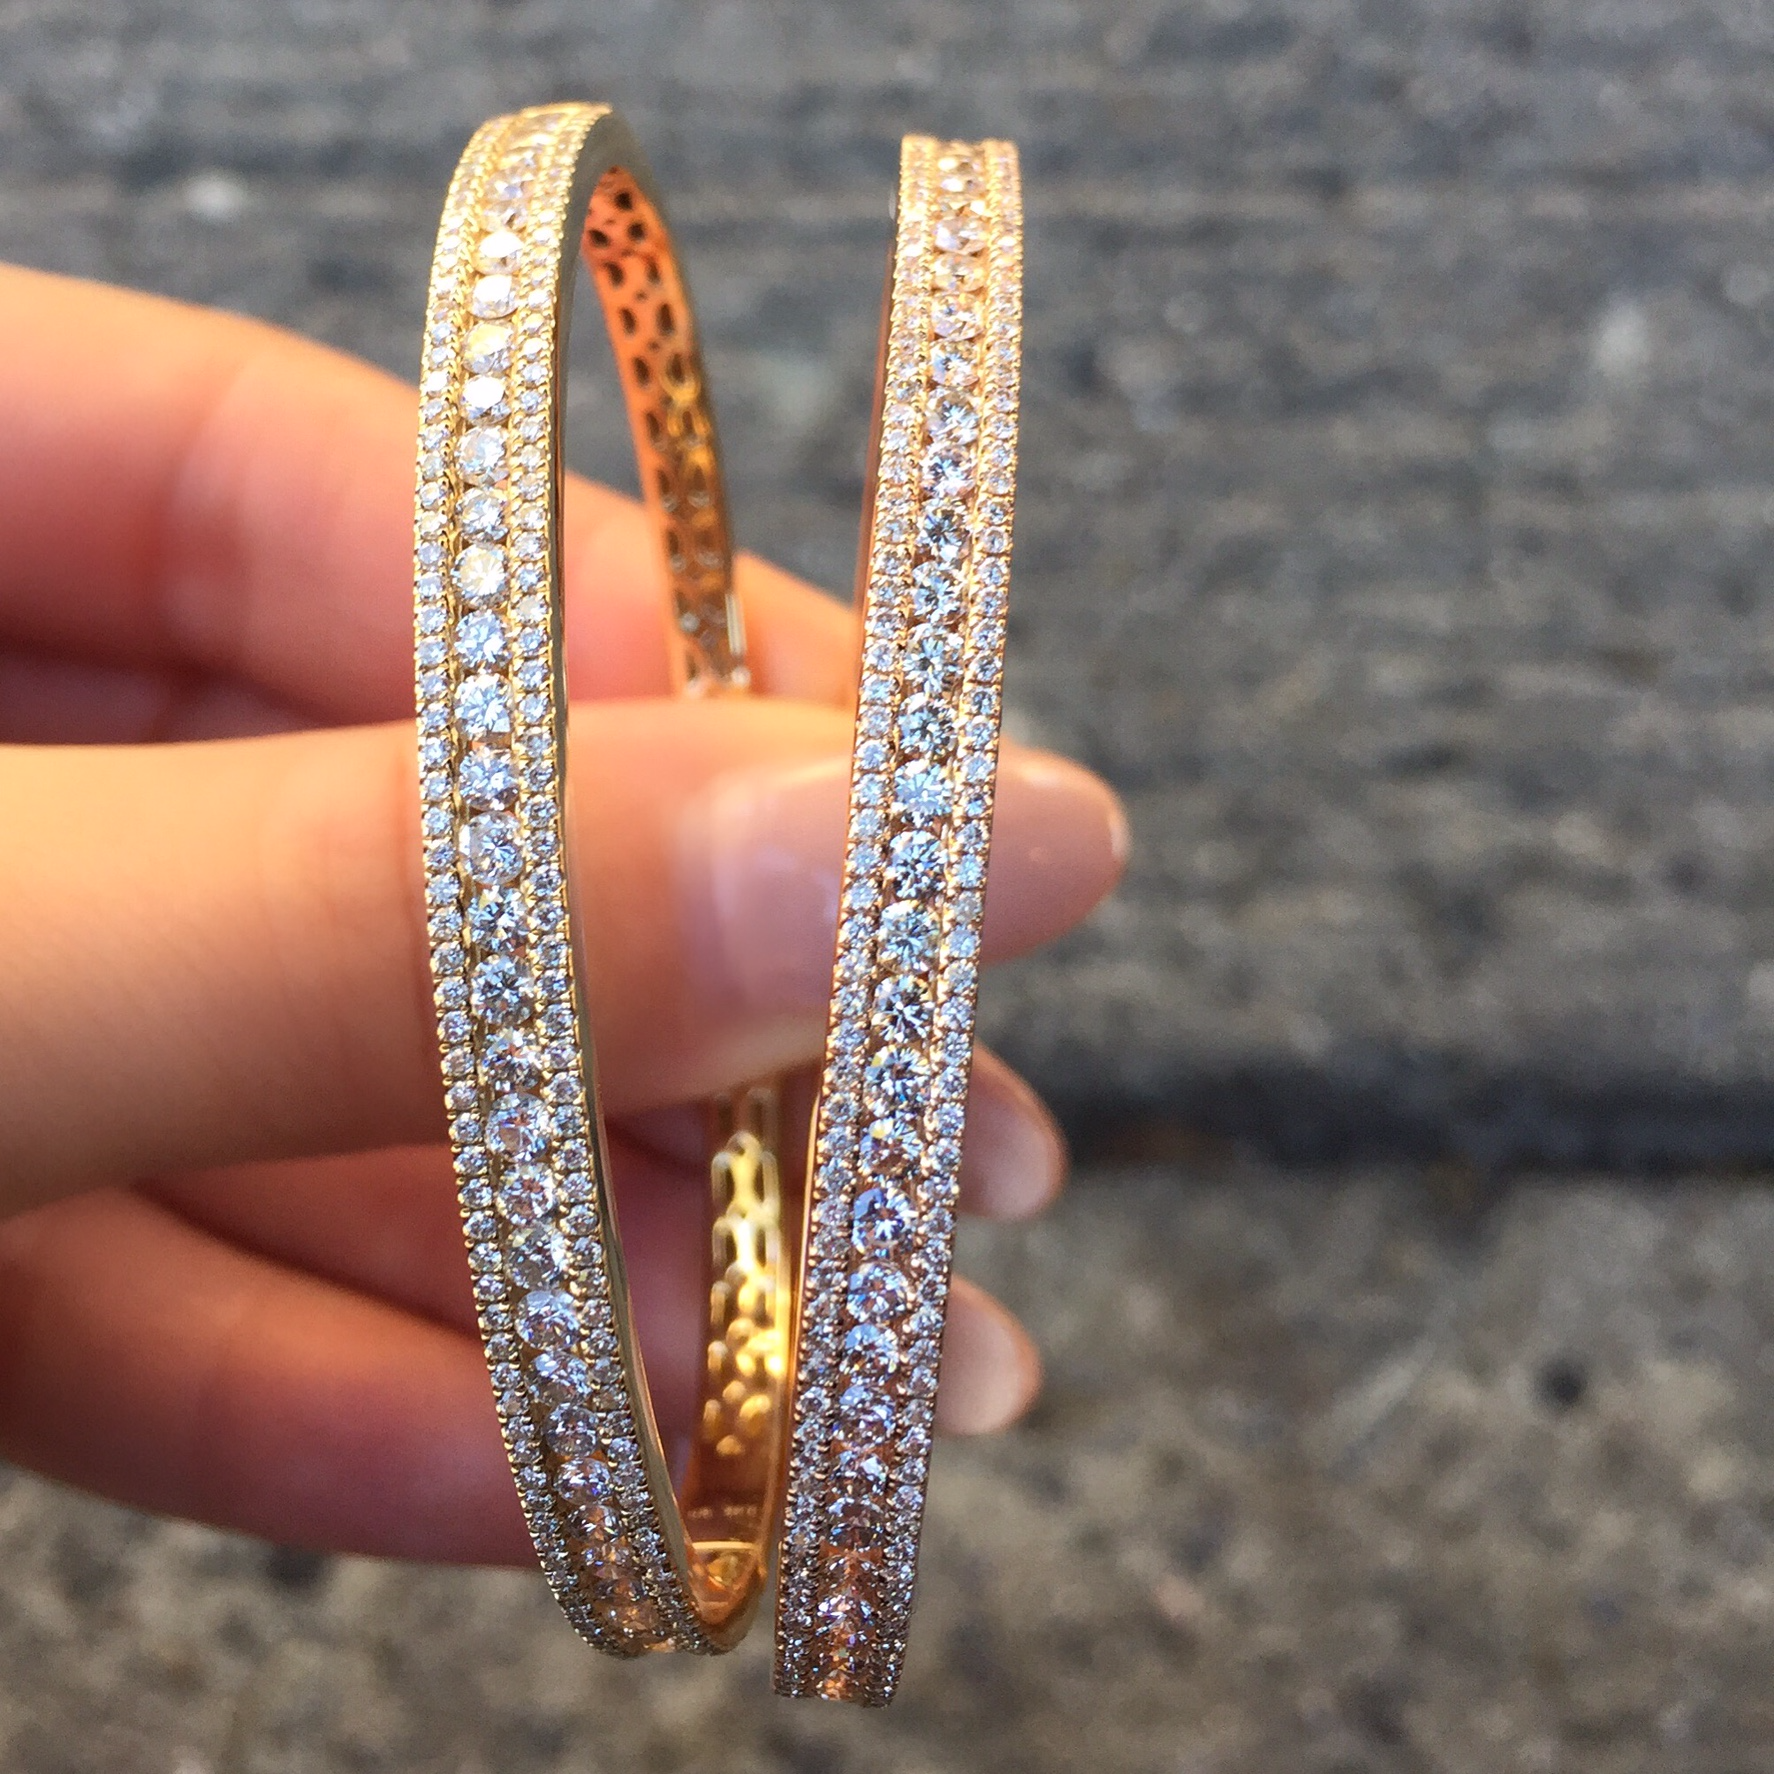 dig bangles bracelet kissing africa bangle diamond and pave adv collections stacking bicego stackable gold bracelets marco